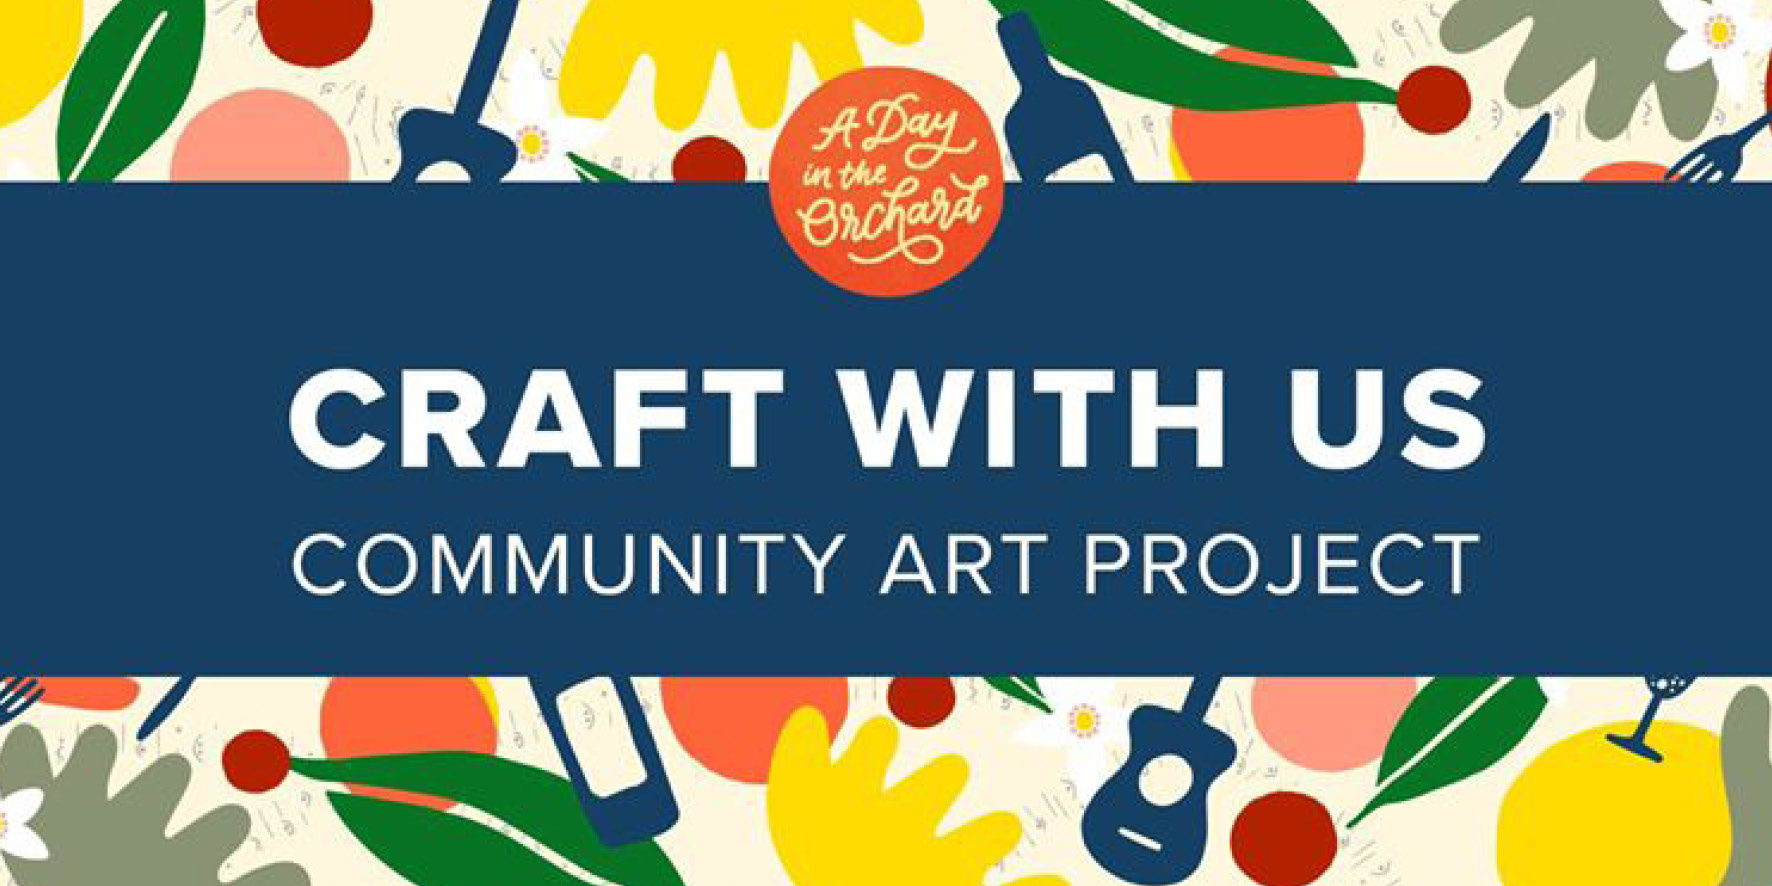 Come Craft With Us!